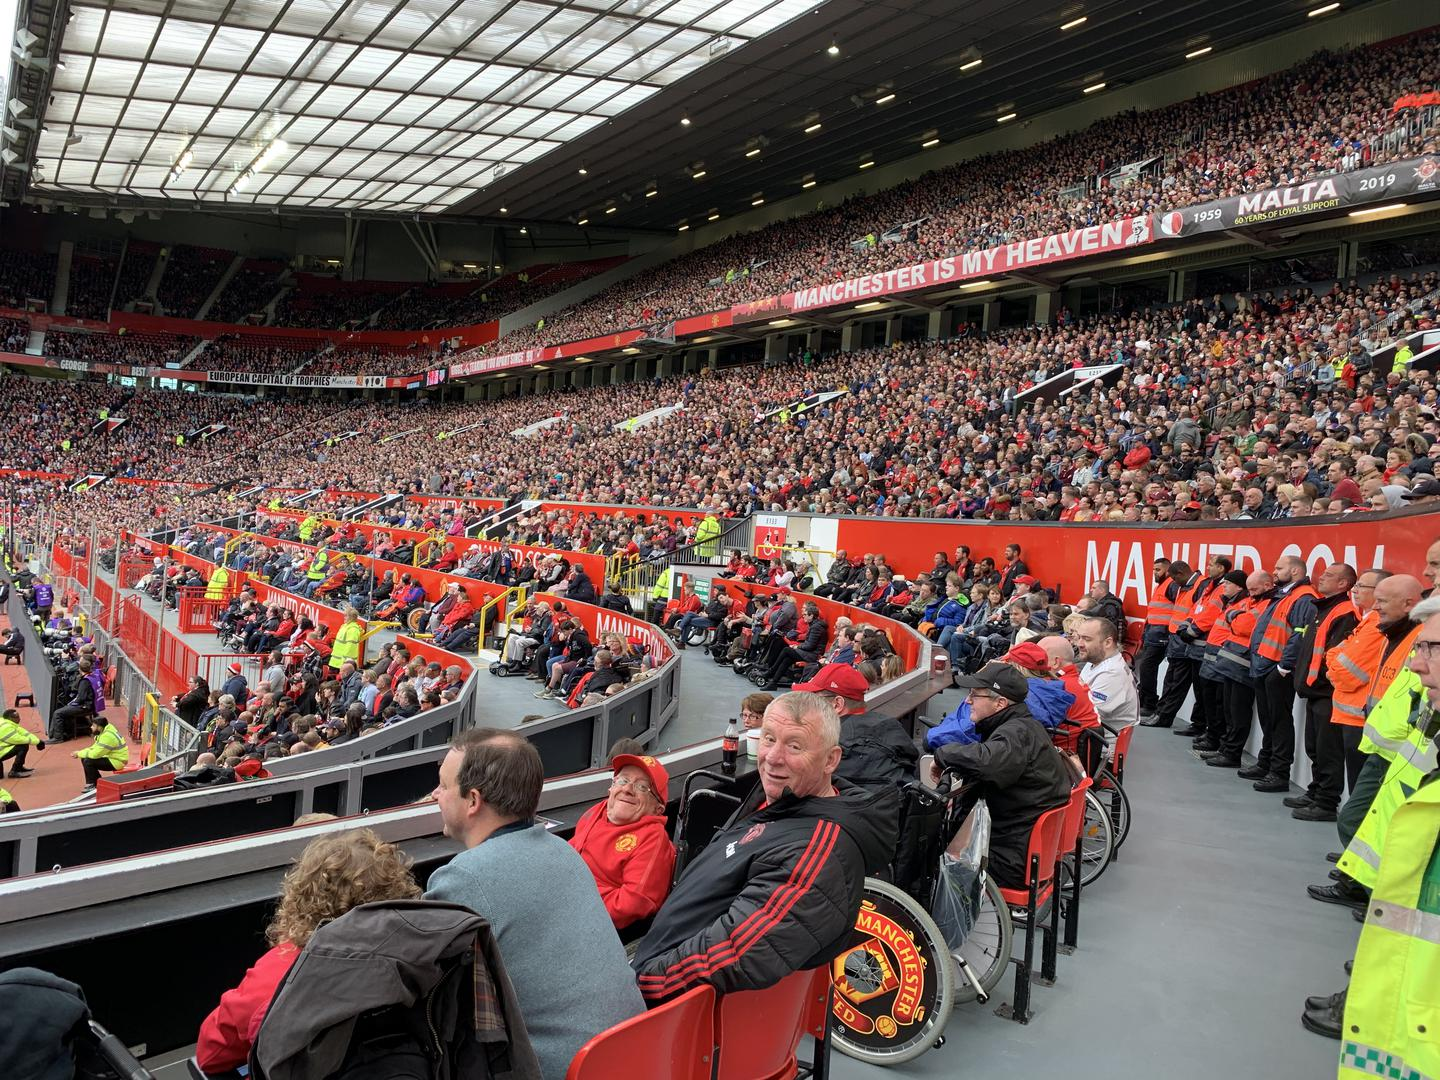 Disabled section at Old Trafford.